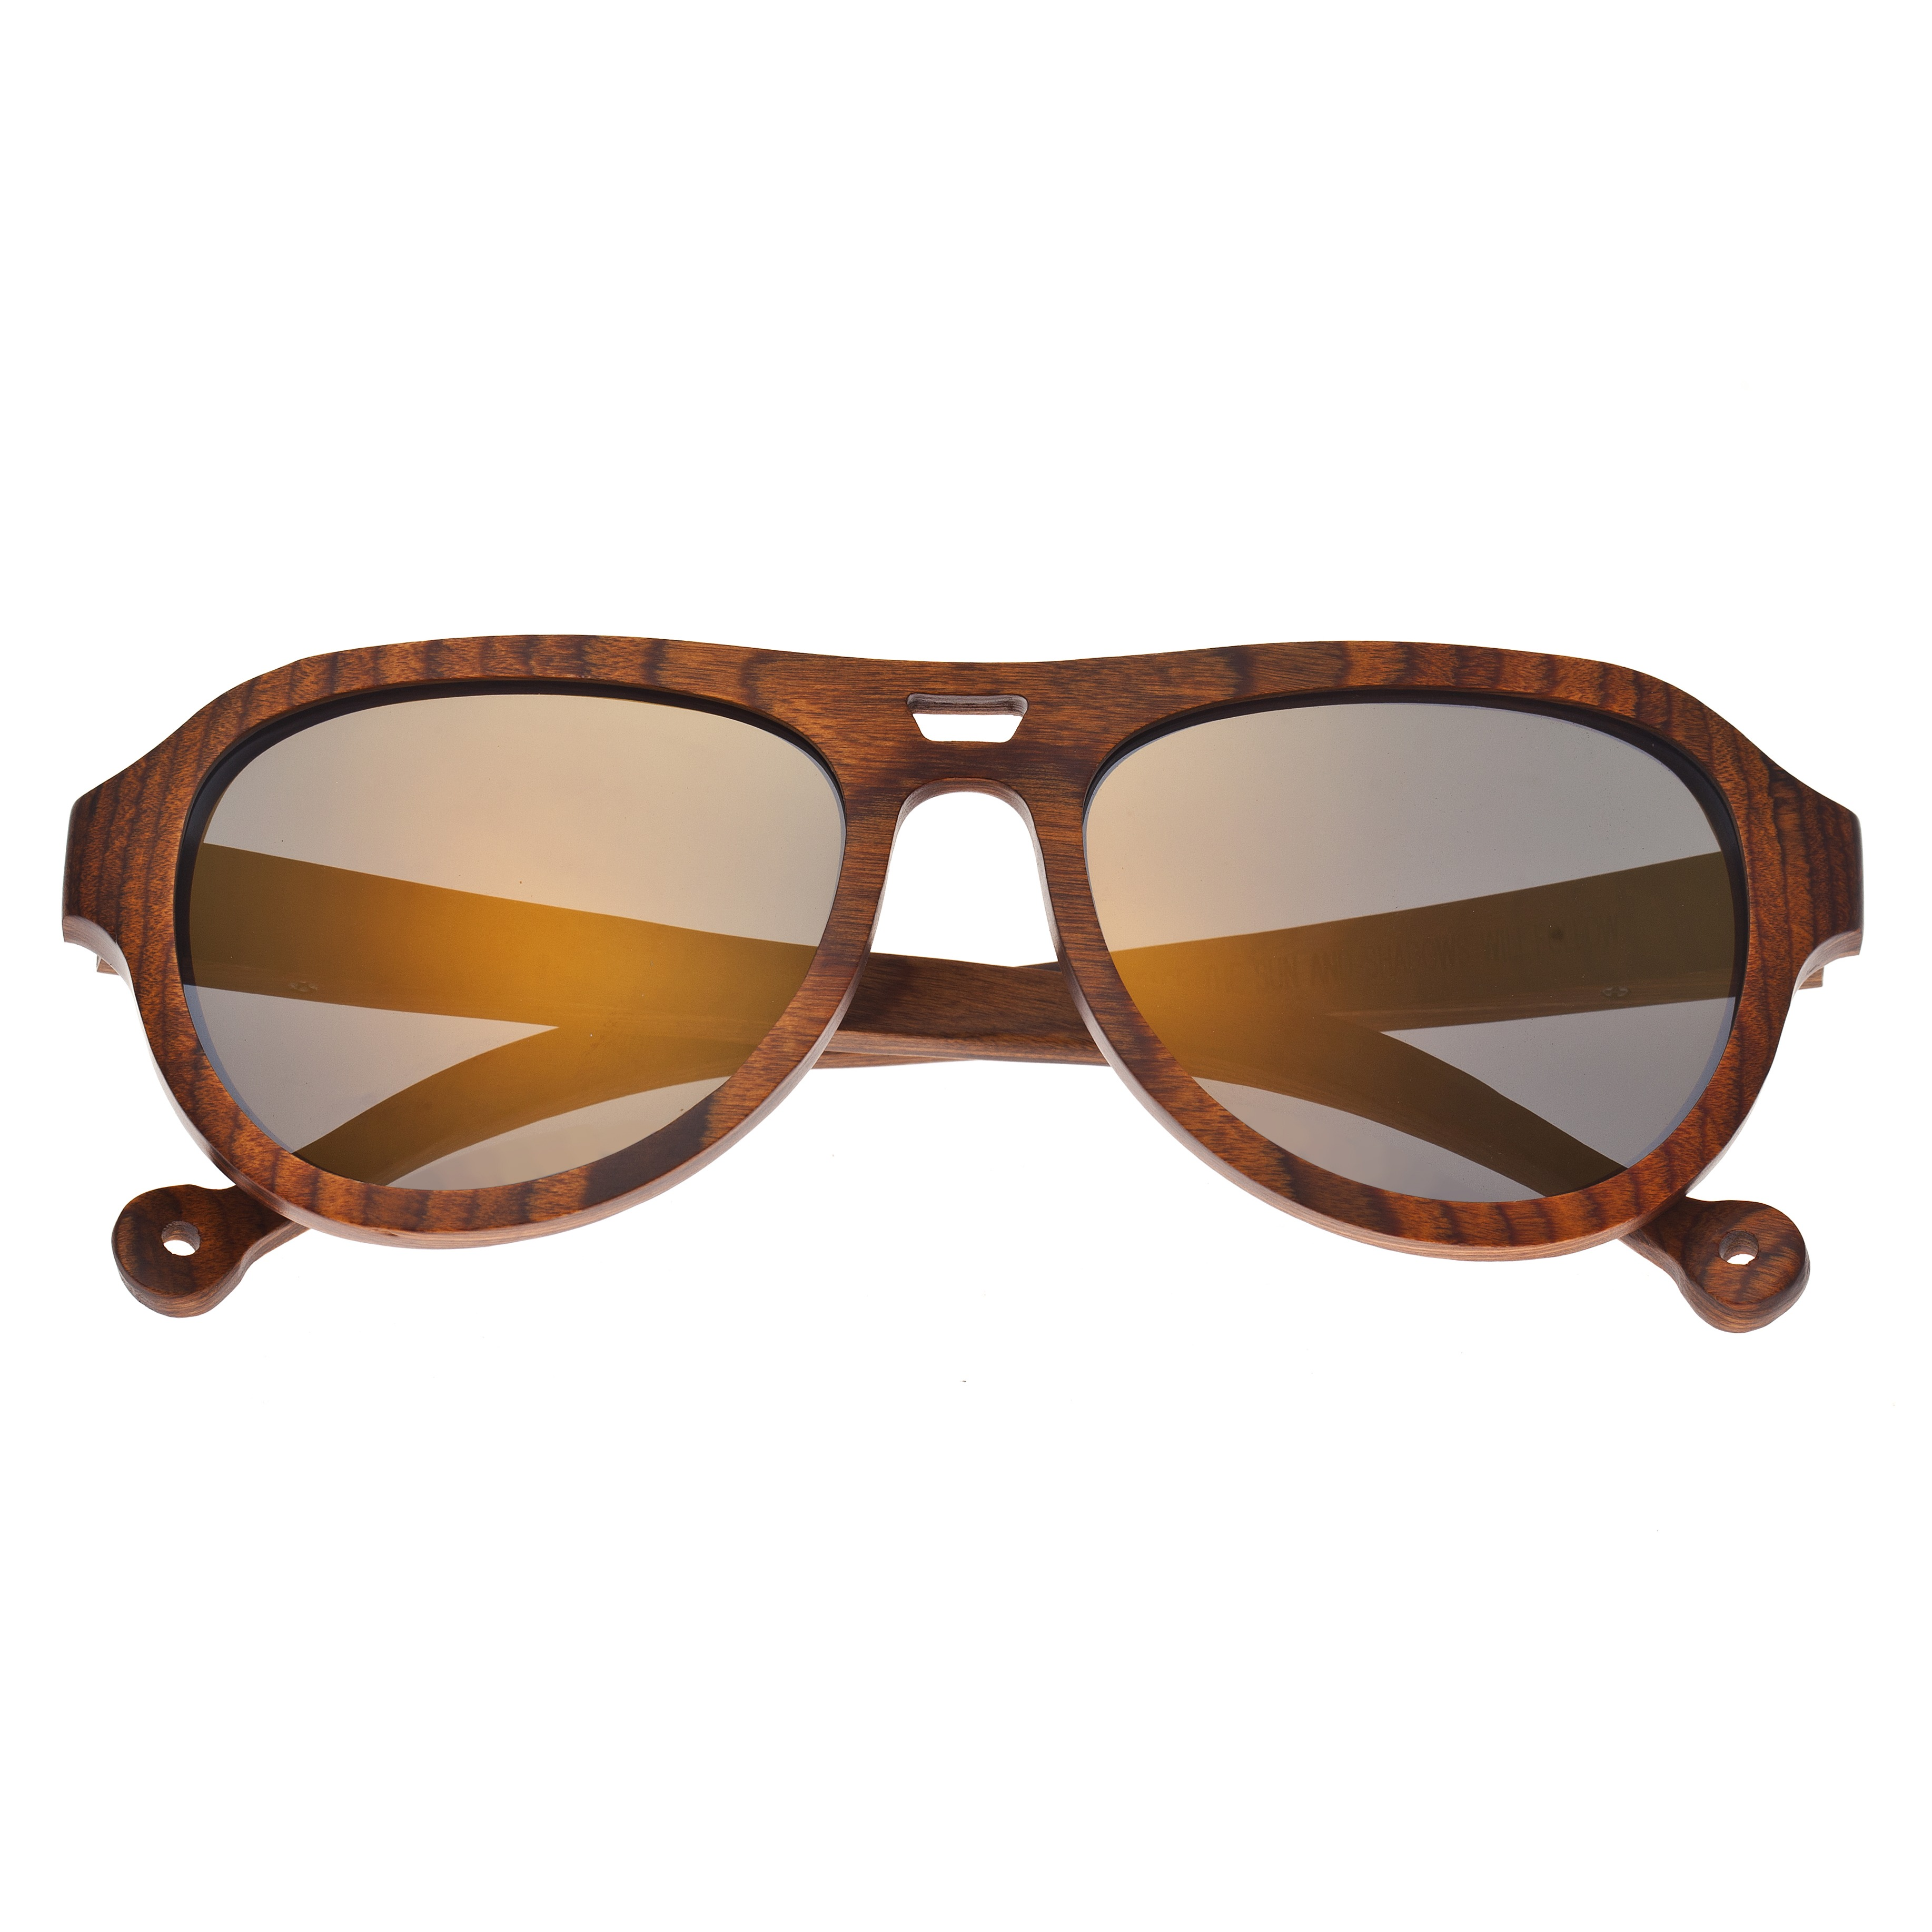 690ee7aed6 I Gogs Sunglasses Company - Bitterroot Public Library